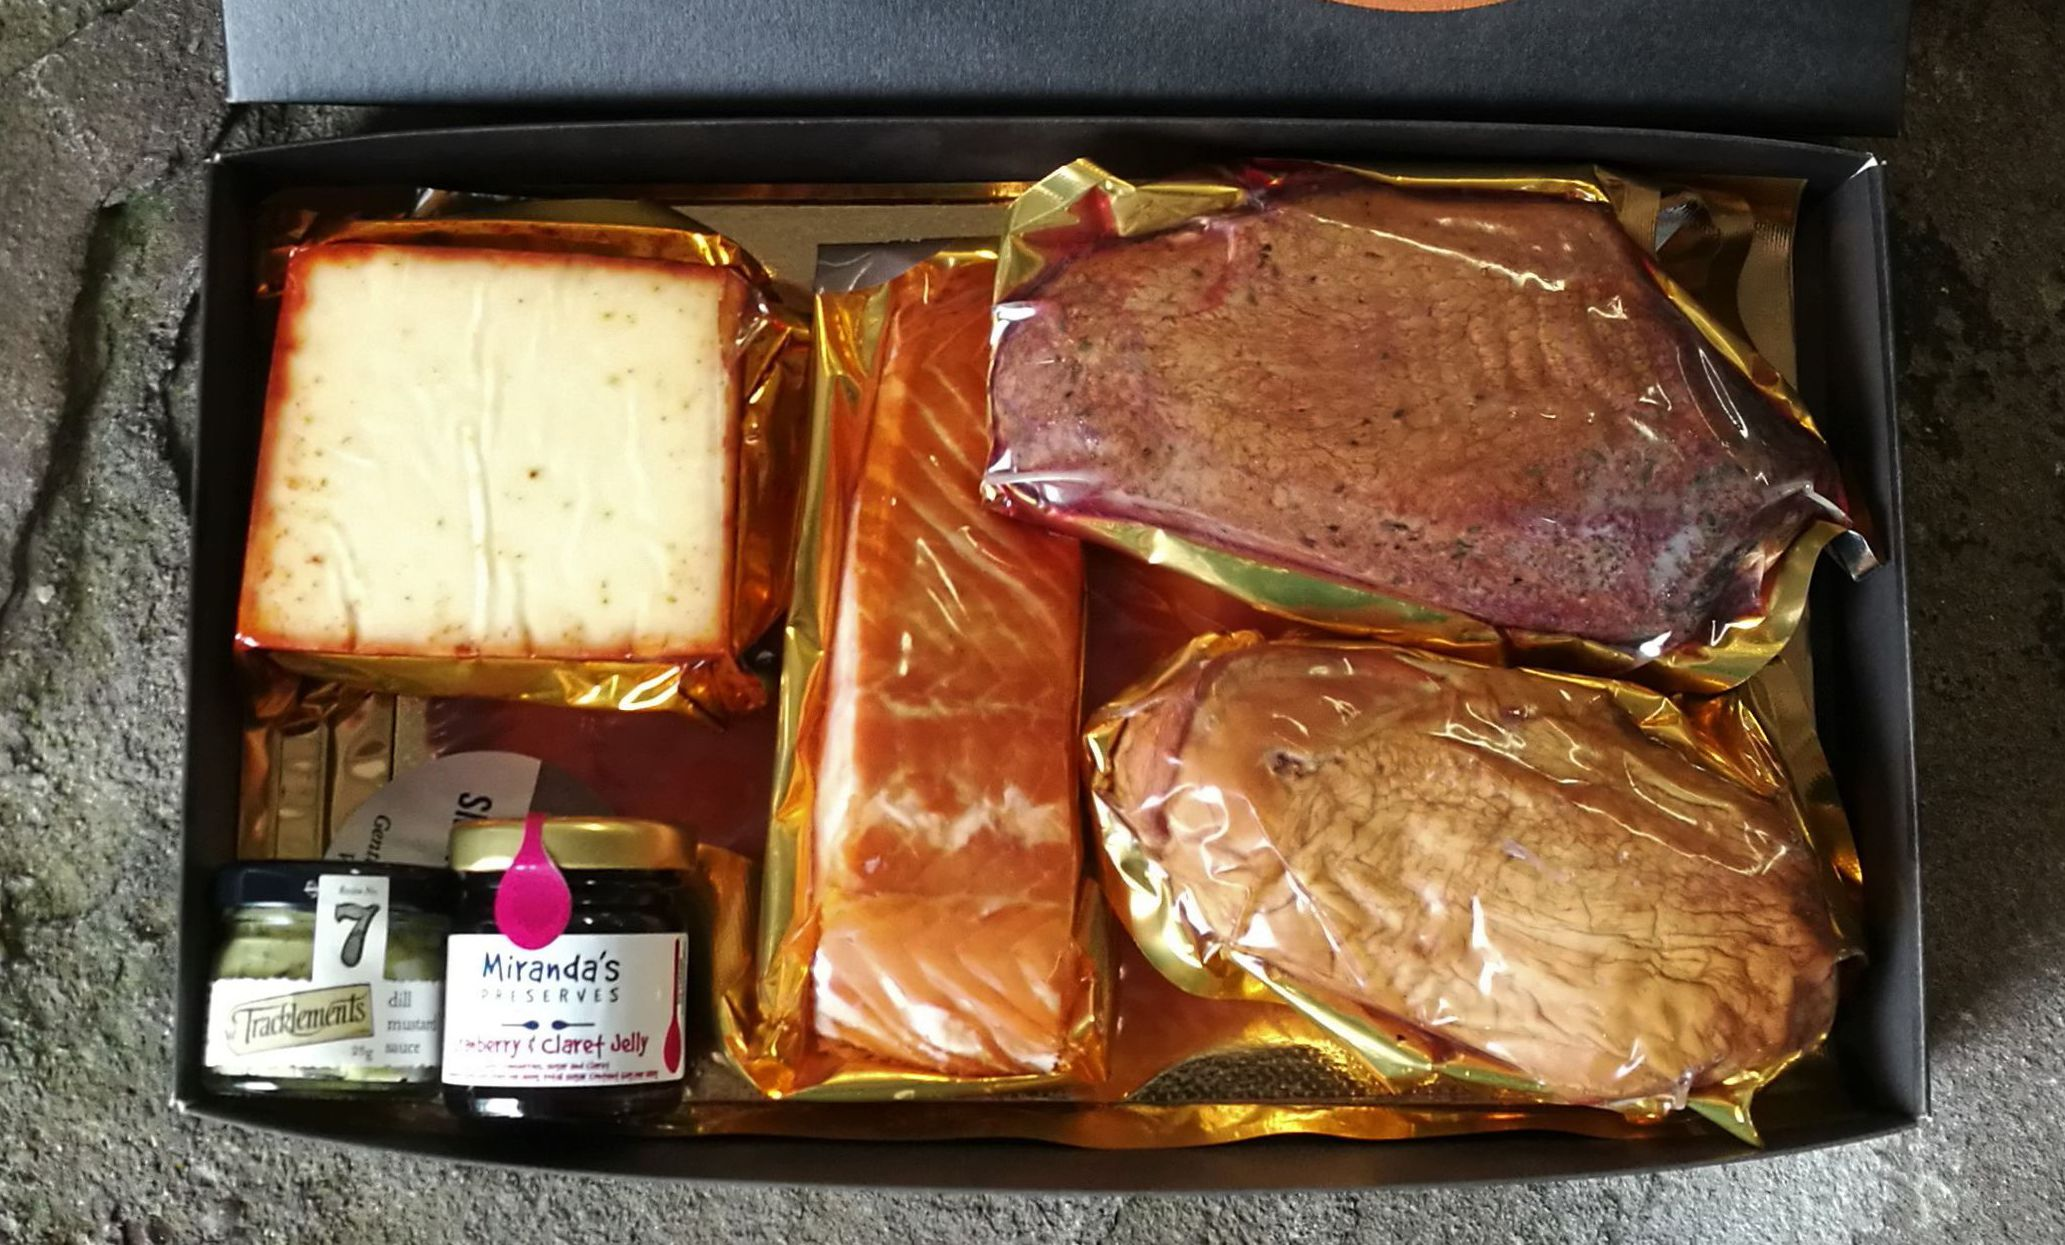 Black Mountains Smokery Smoked Food Hamper